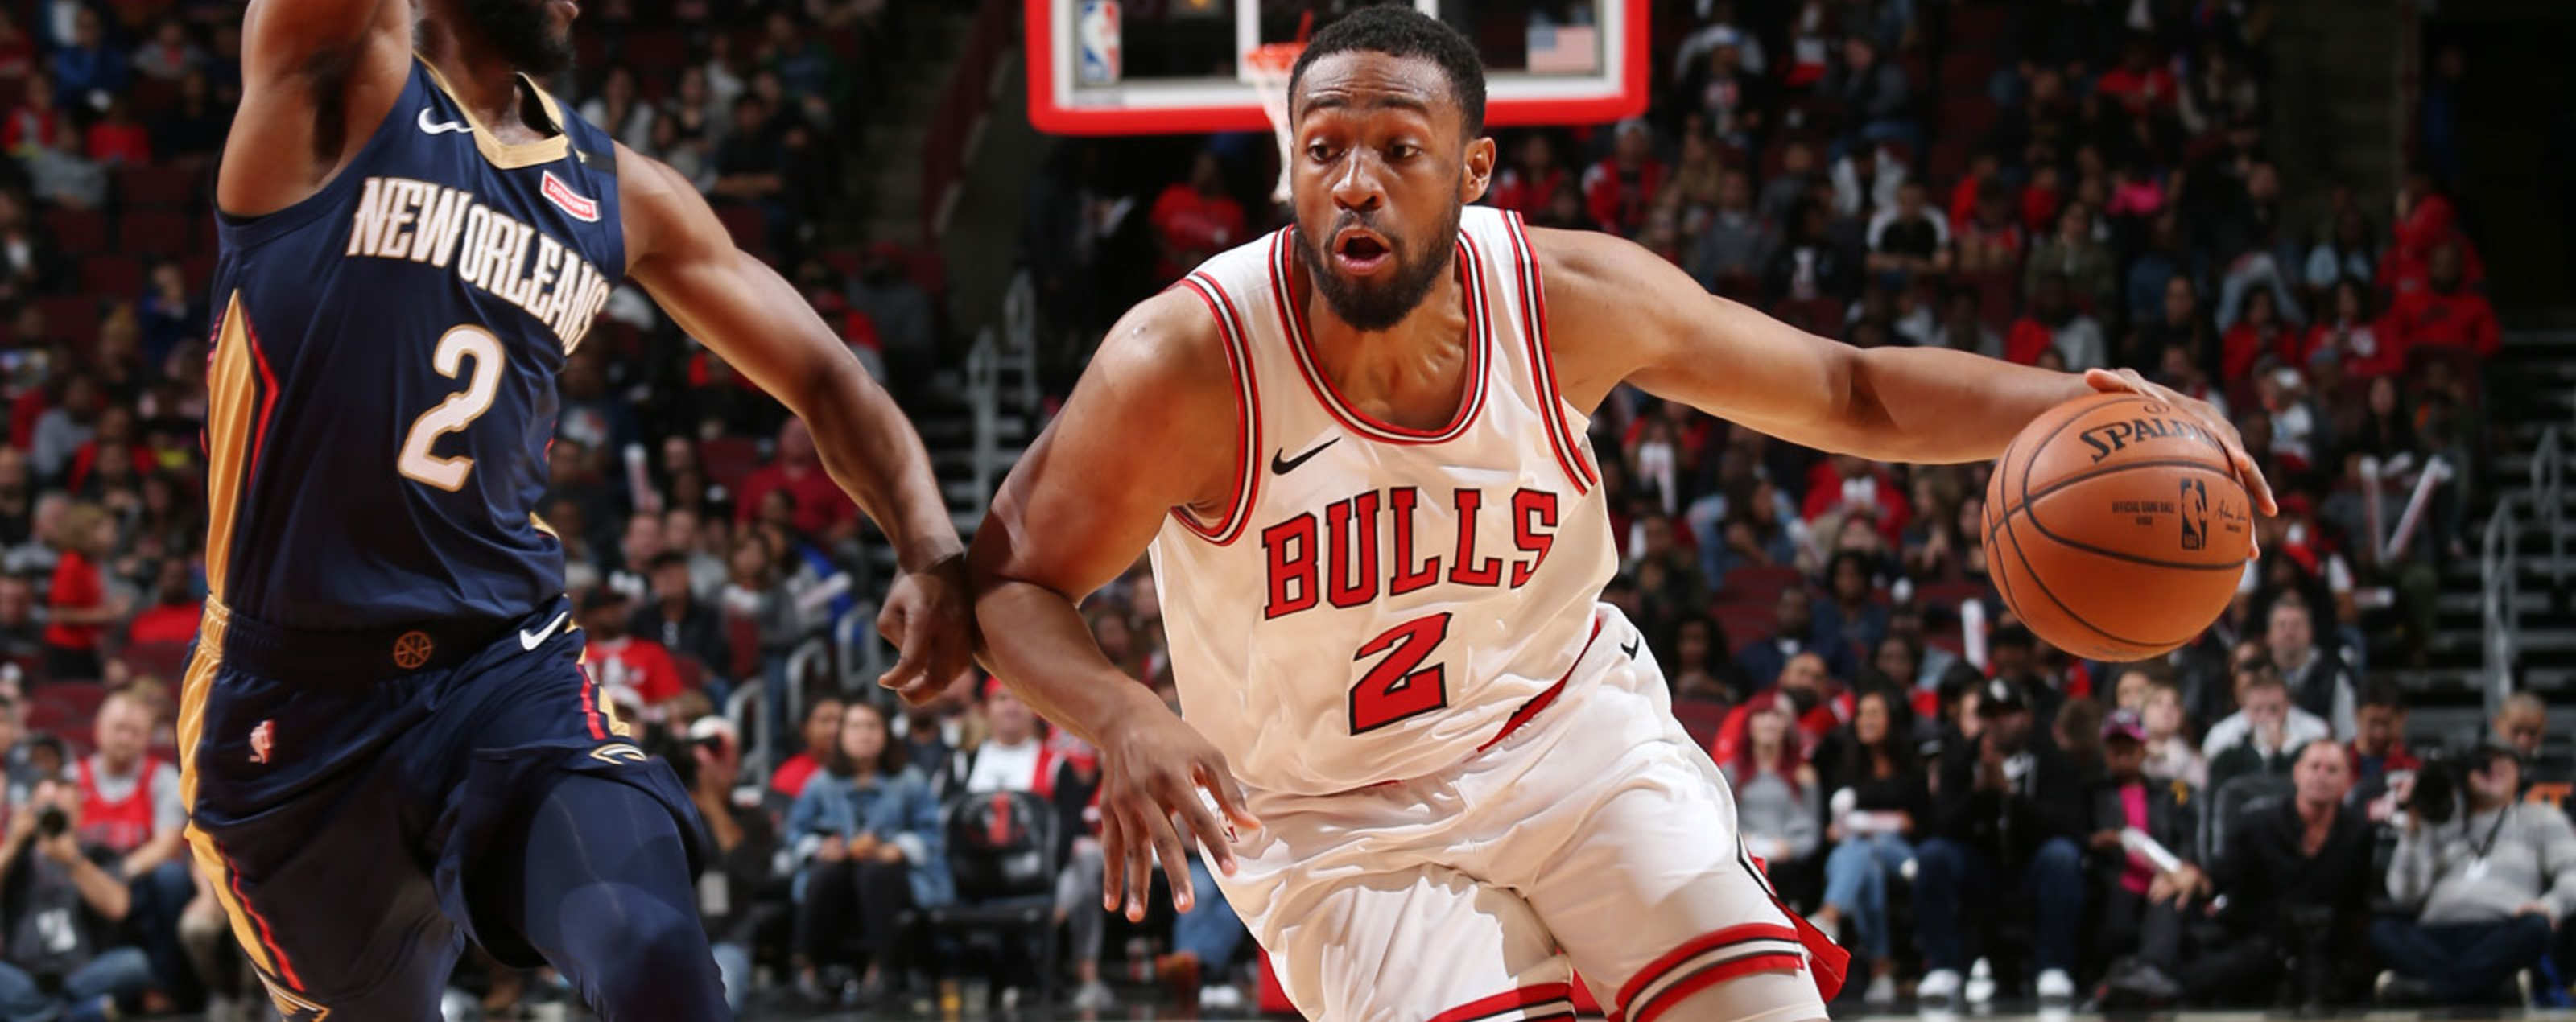 Jabari Parker #2 of the Chicago Bulls handles the ball against the New Orleans Pelicans during a pre-season game on September 30, 2018 at the United Center in Chicago, Illinois.